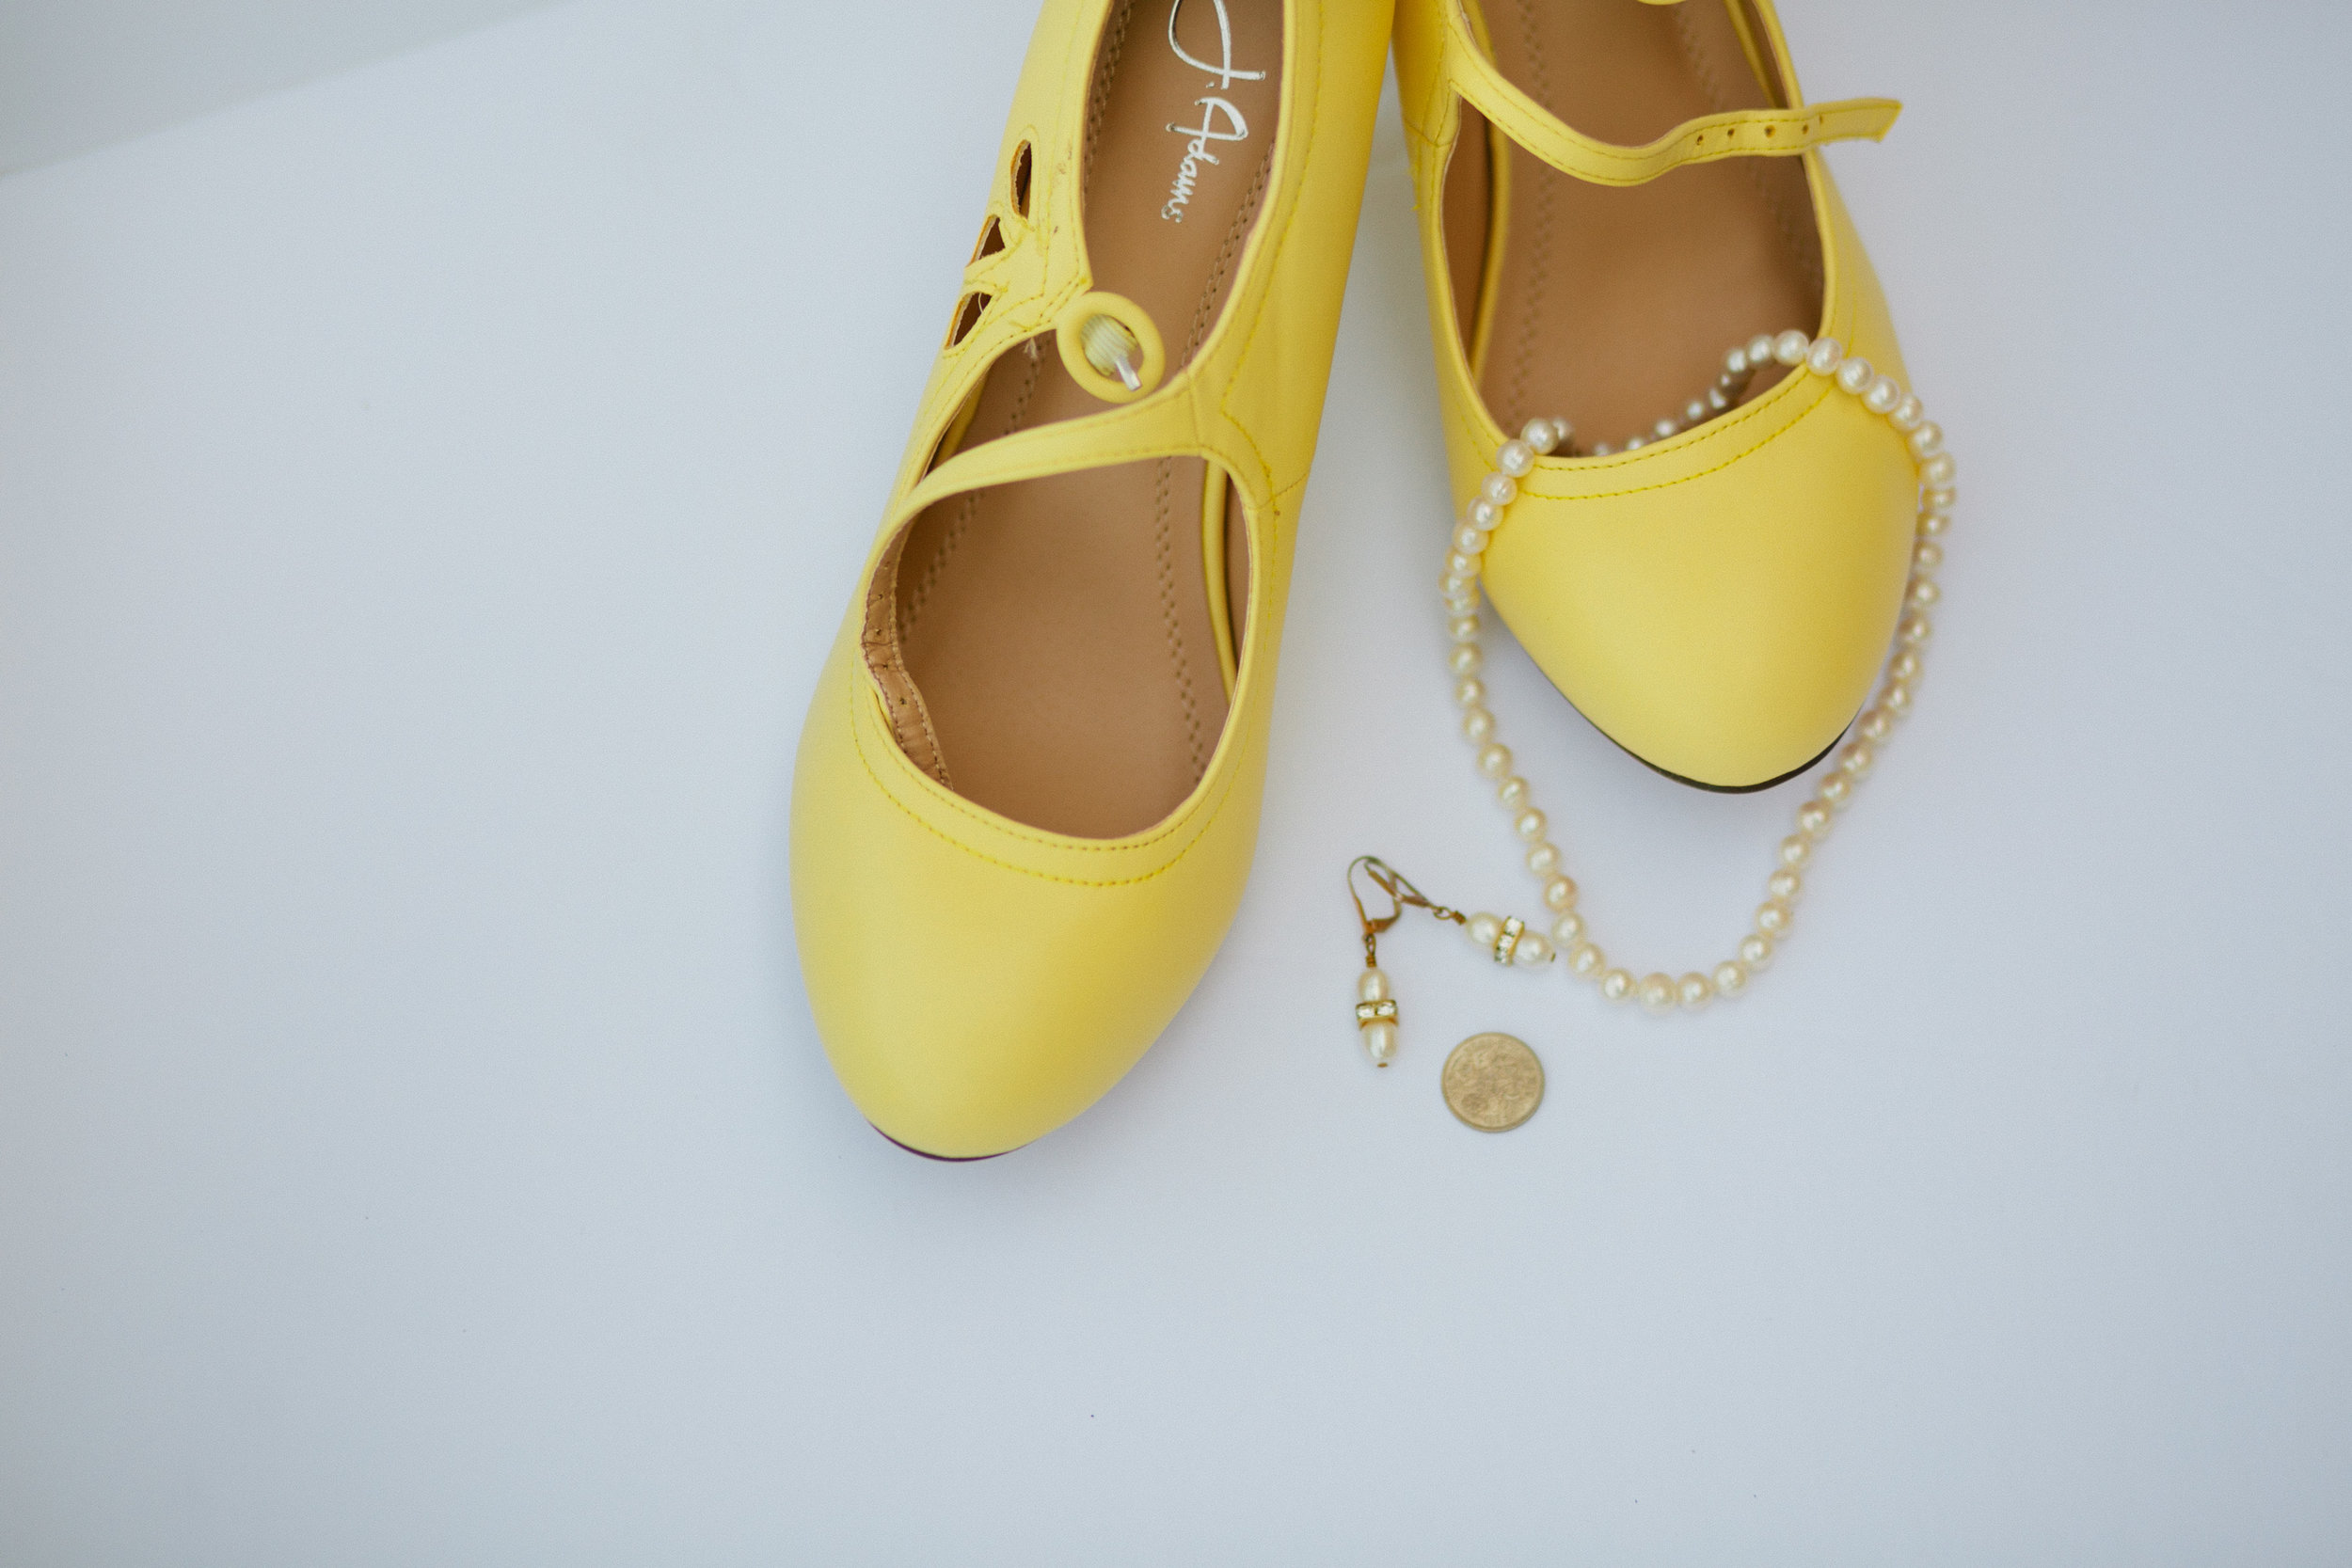 yellow soes and a sixpence wedding jewelry